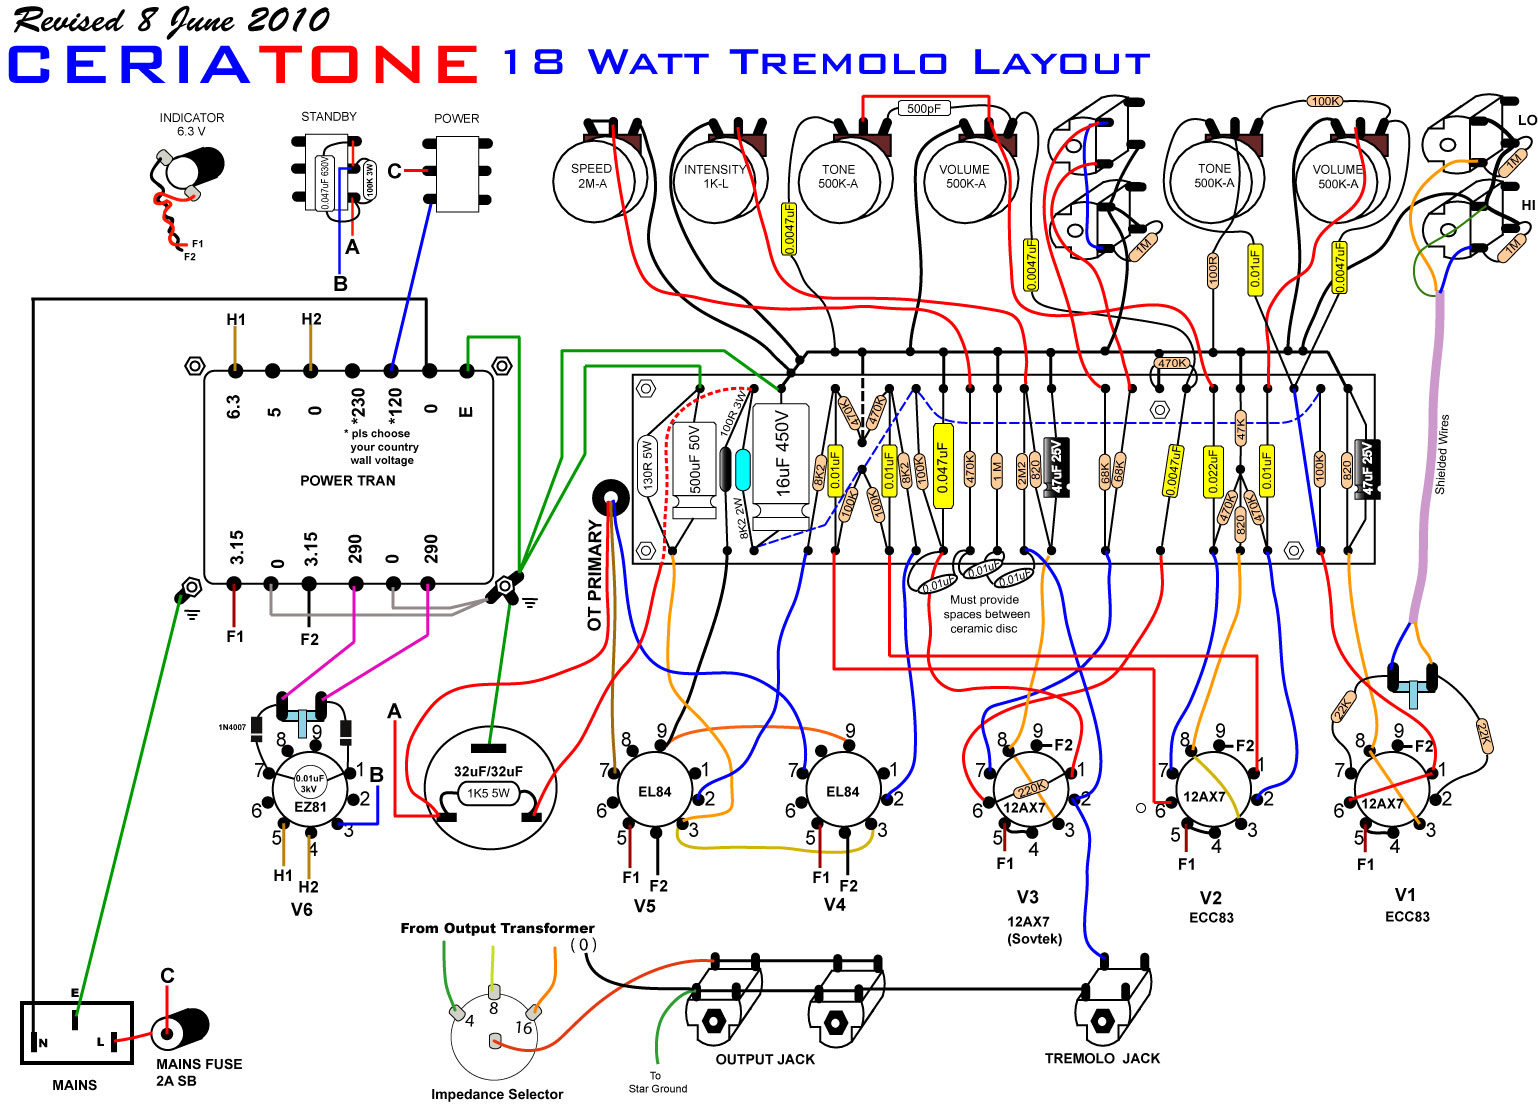 Db9 To Rj45 Connector Wiring Diagram Also Altec Lansing Speaker Wiring